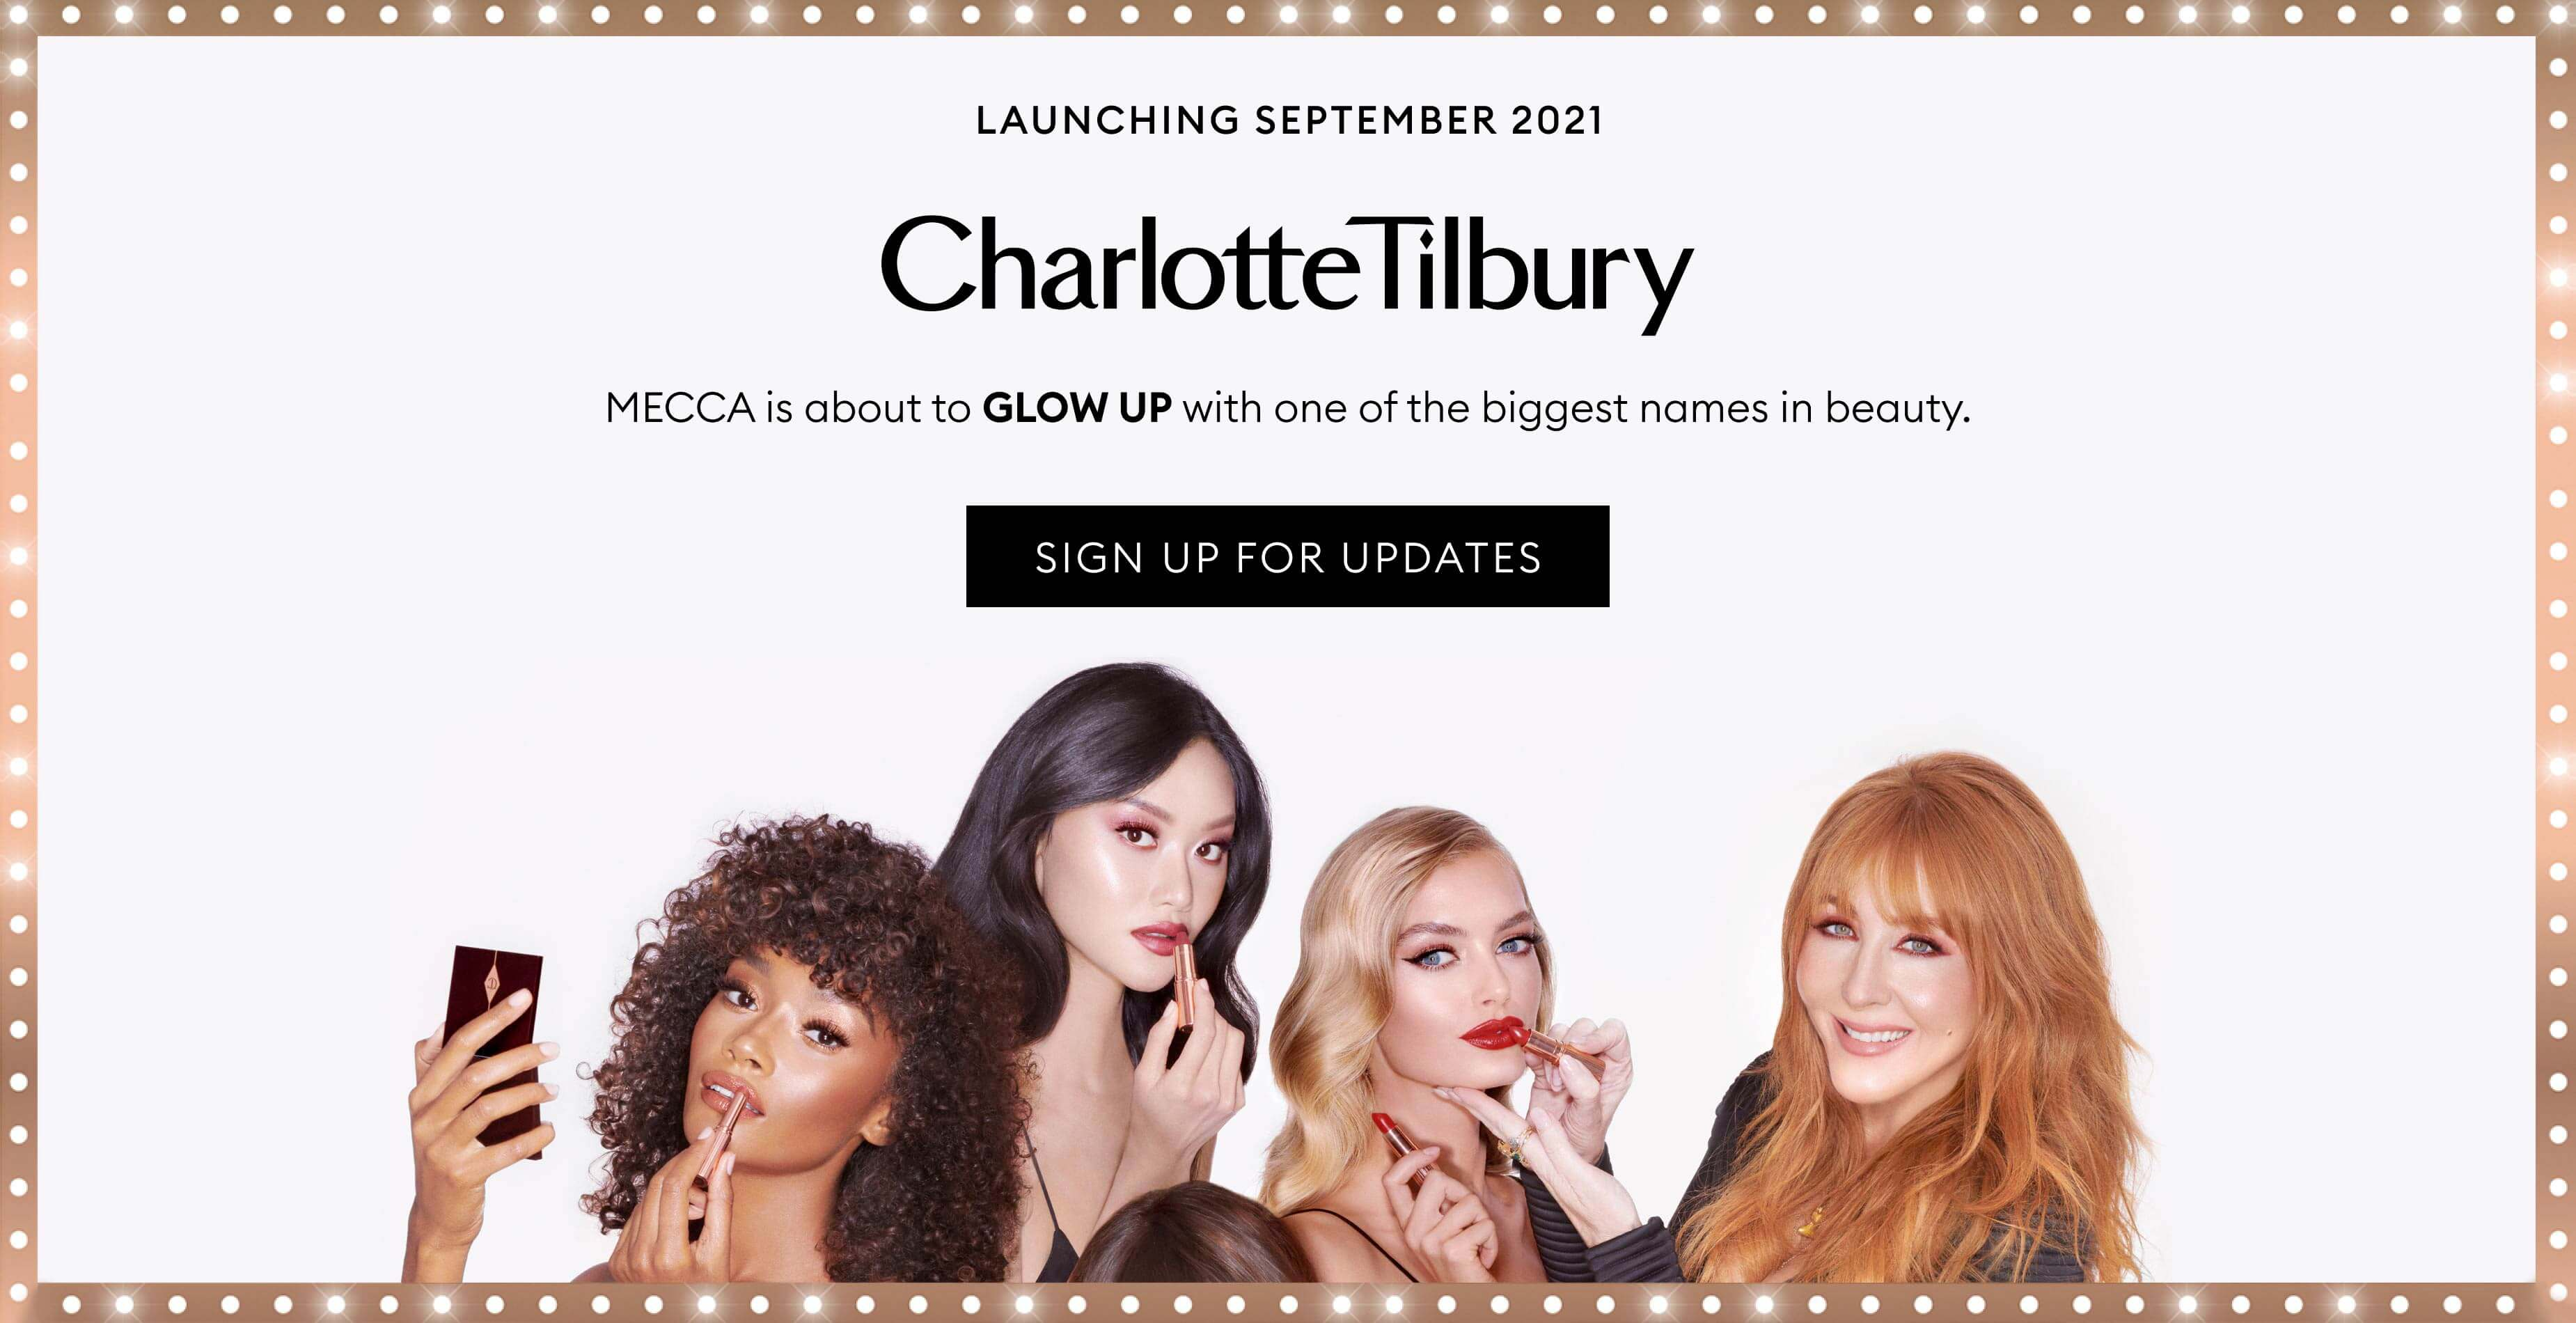 Mecca is about to glow up with one of the biggest names in beauty. Charlotte Tilbury - launching September 2021